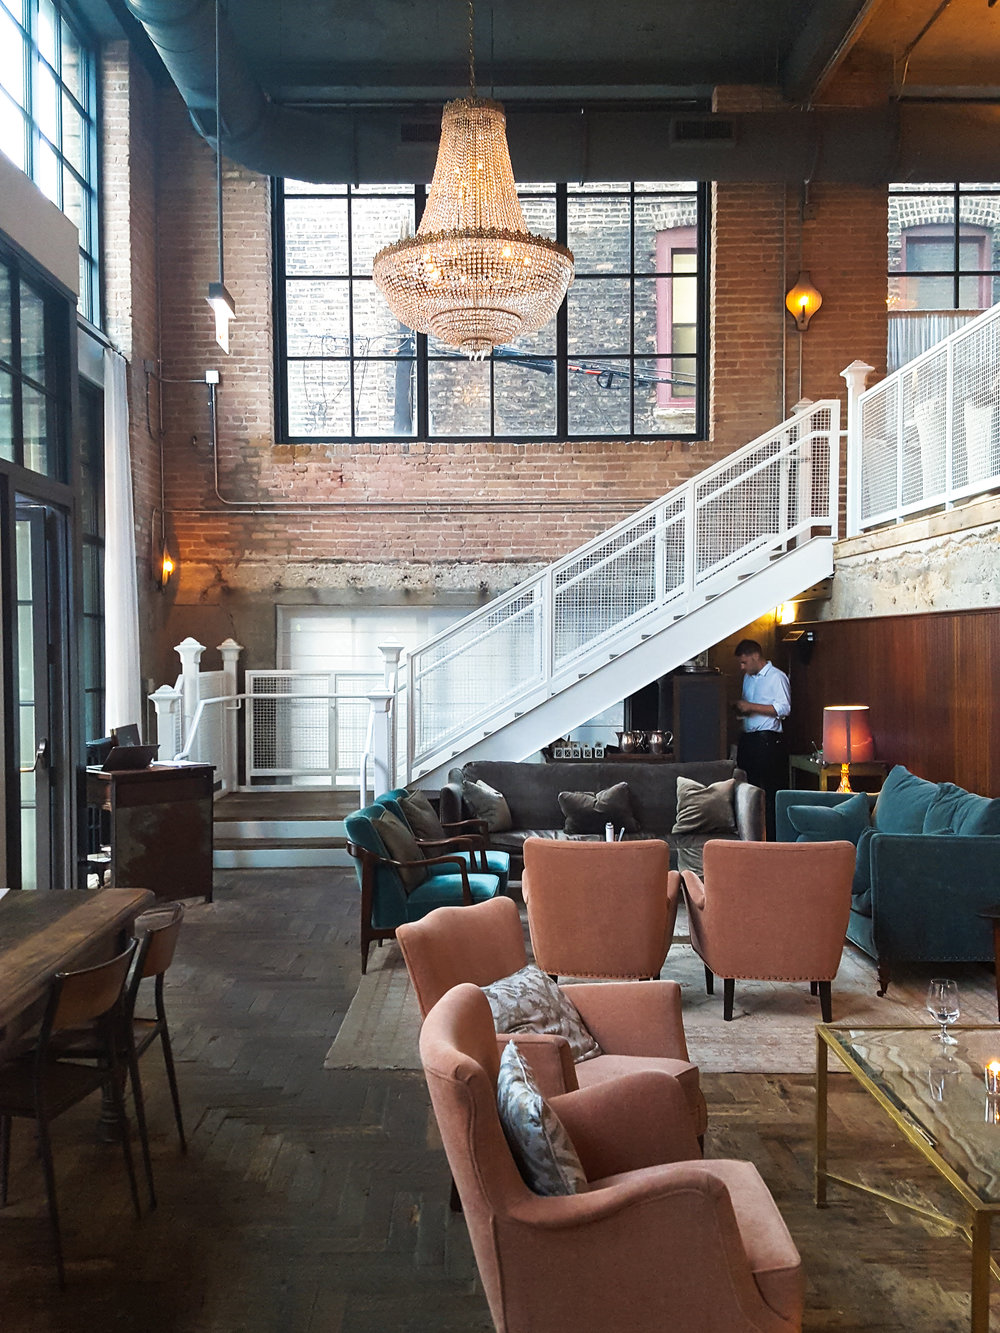 Possibly the most photogenic and Insta-ready room in Chicago - The Allis at Soho House